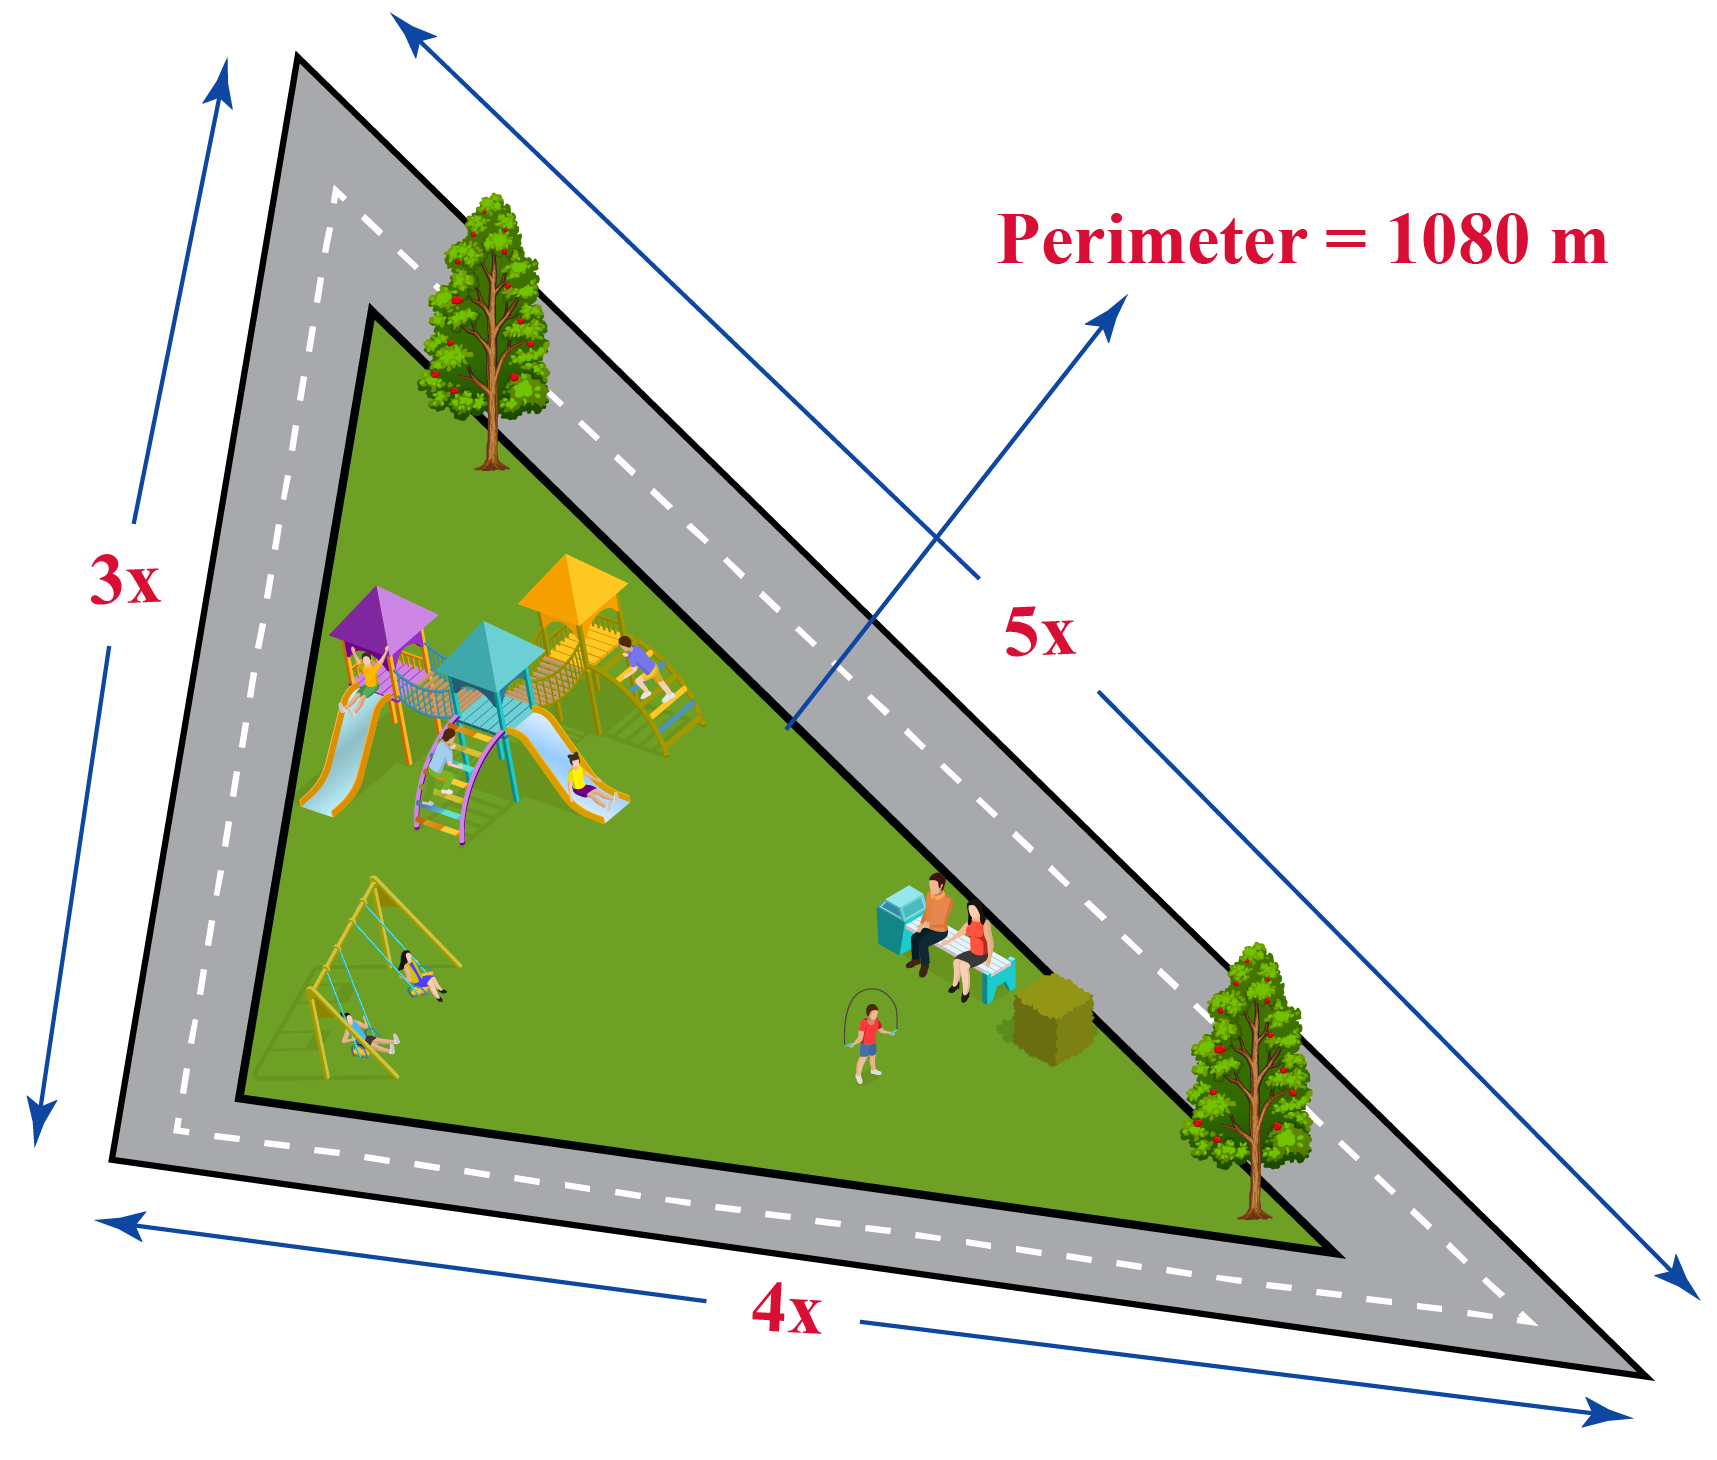 3 sides of a triangle are in the ratio 3 is to 4 is to 5 and the perimeter is 1080 m. Find the area of the park.